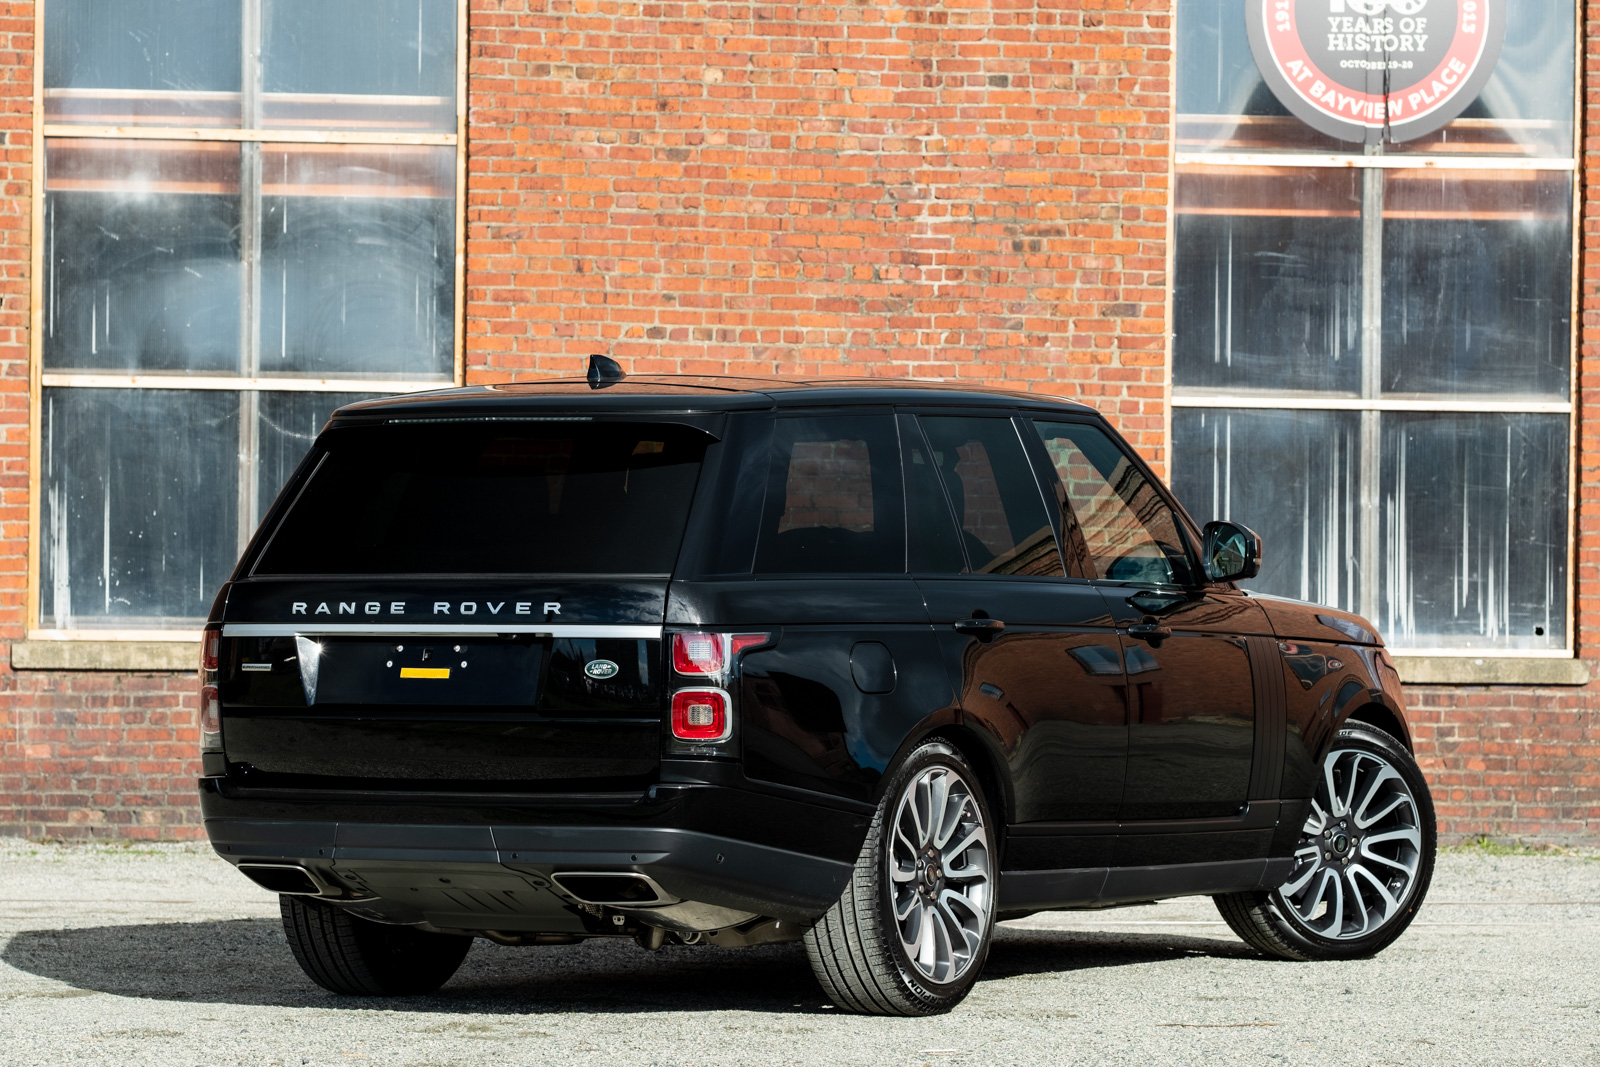 Range Rover Price Canada >> 2019 Range Rover Supercharged - Silver Arrow Cars Ltd.